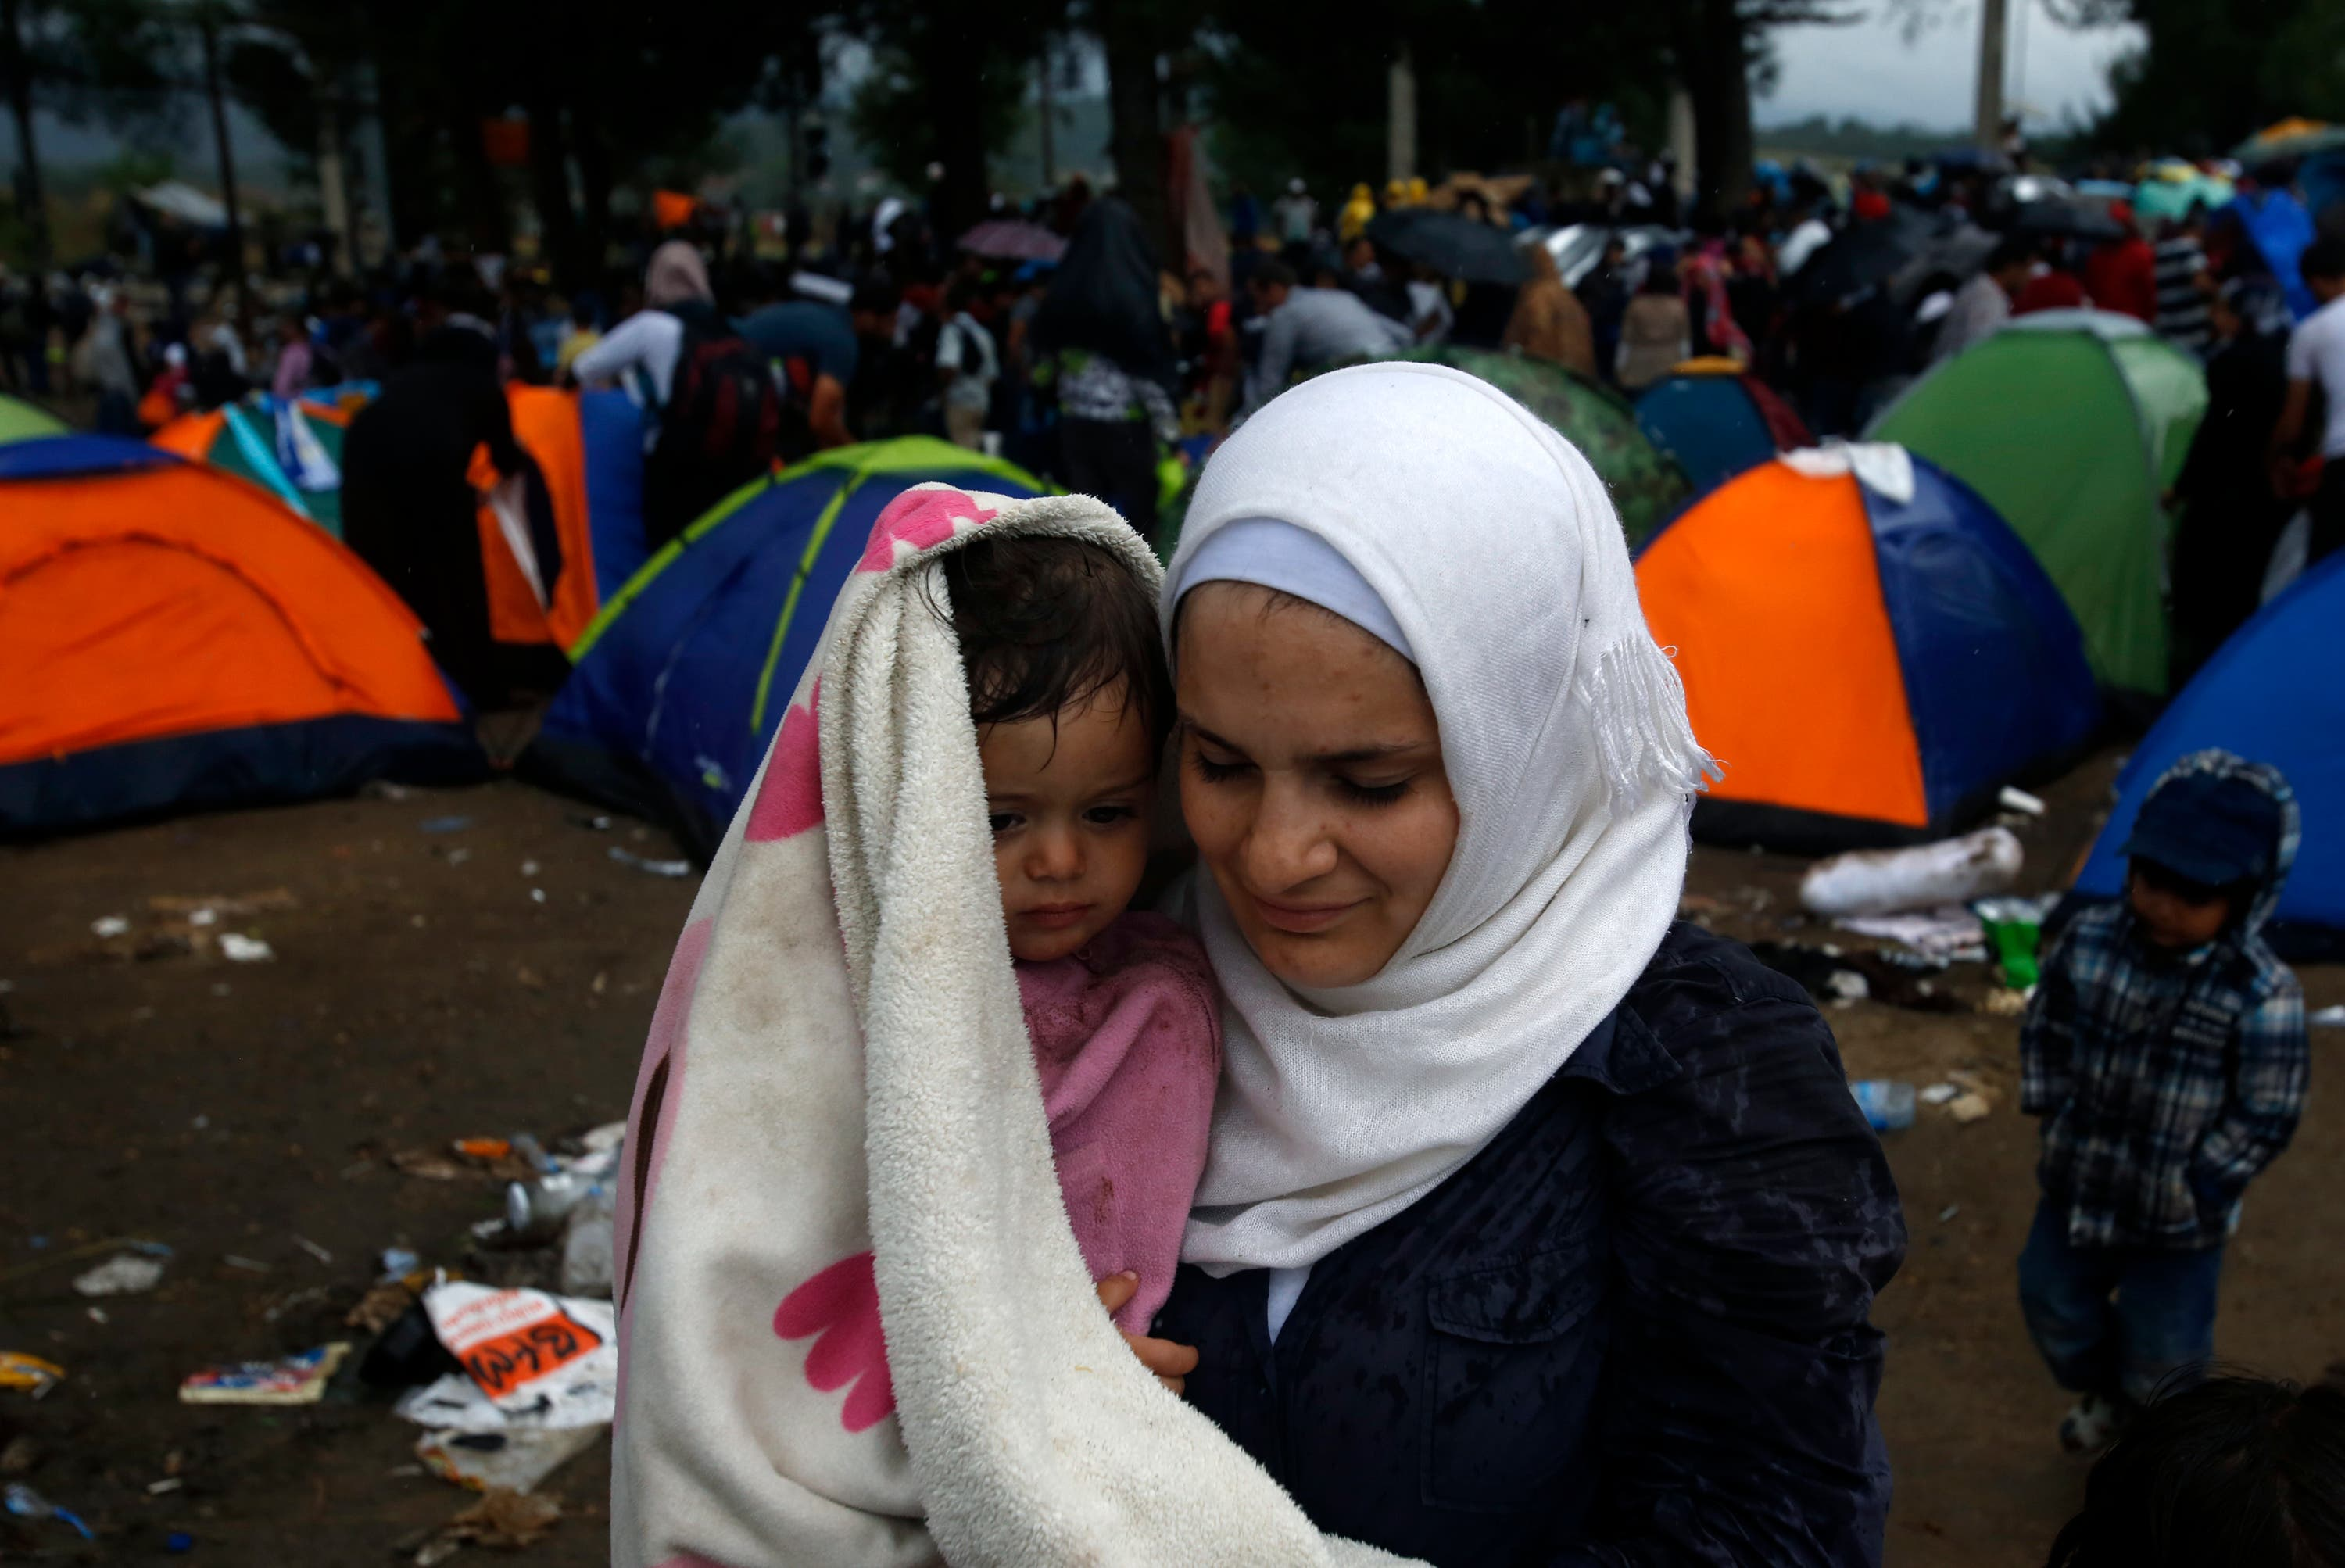 A migrant woman holds a child on the border line with Greece, near the train station of Idomeni, northern Greece, Saturday, Aug. 22, 2015. (AP)